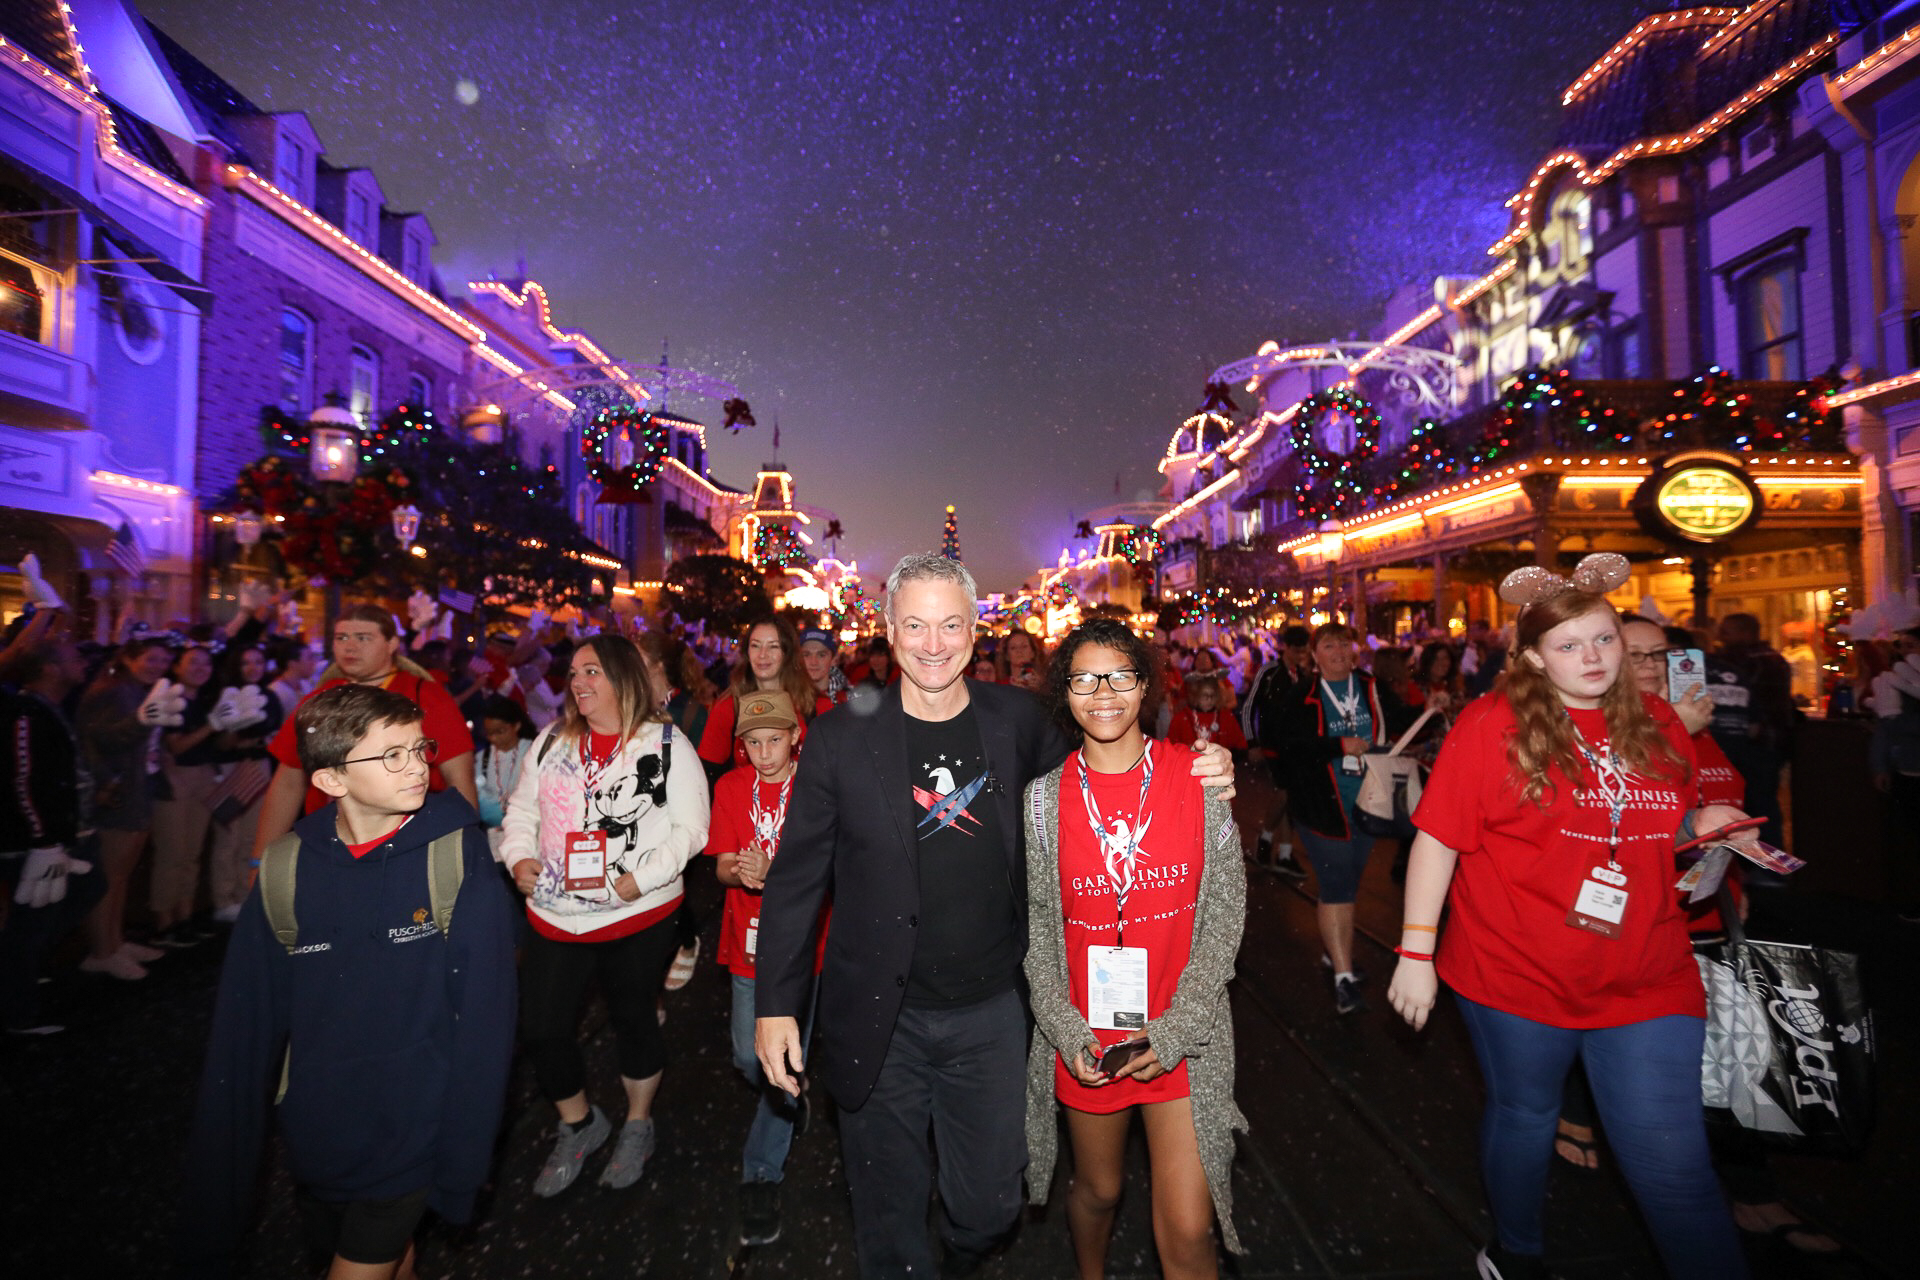 Gary Sinise Foundation Treats 1,000 Children of Fallen Soldiers to Free Disney World Vacation